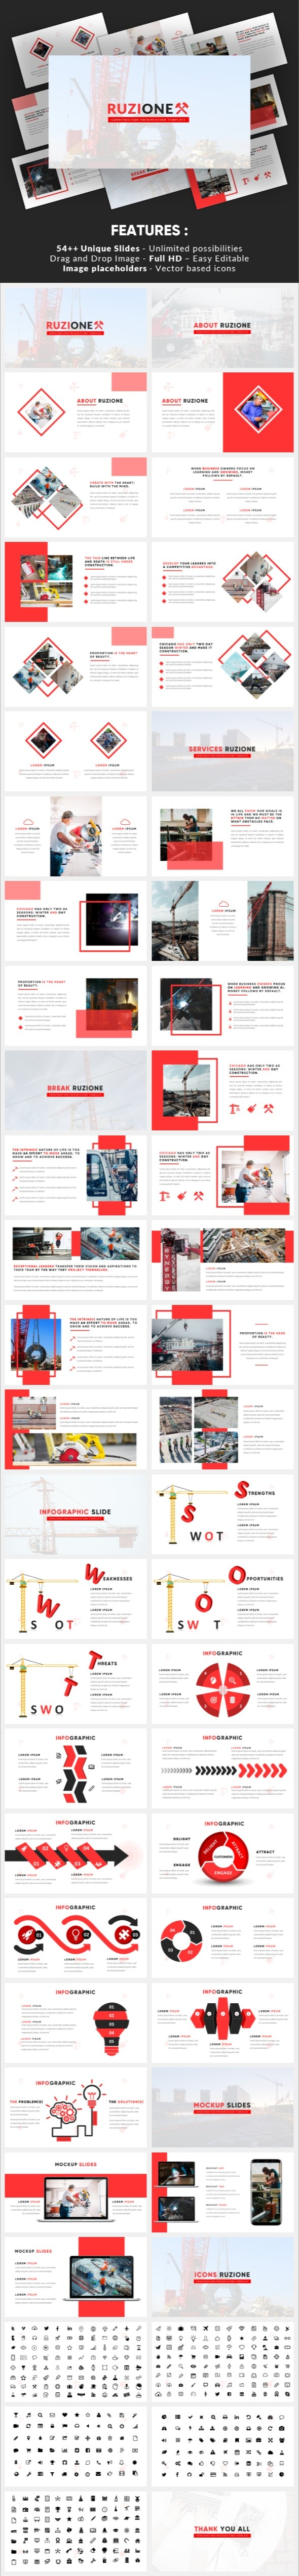 Ruzione - Construction Powerpoint Template - Business PowerPoint Templates